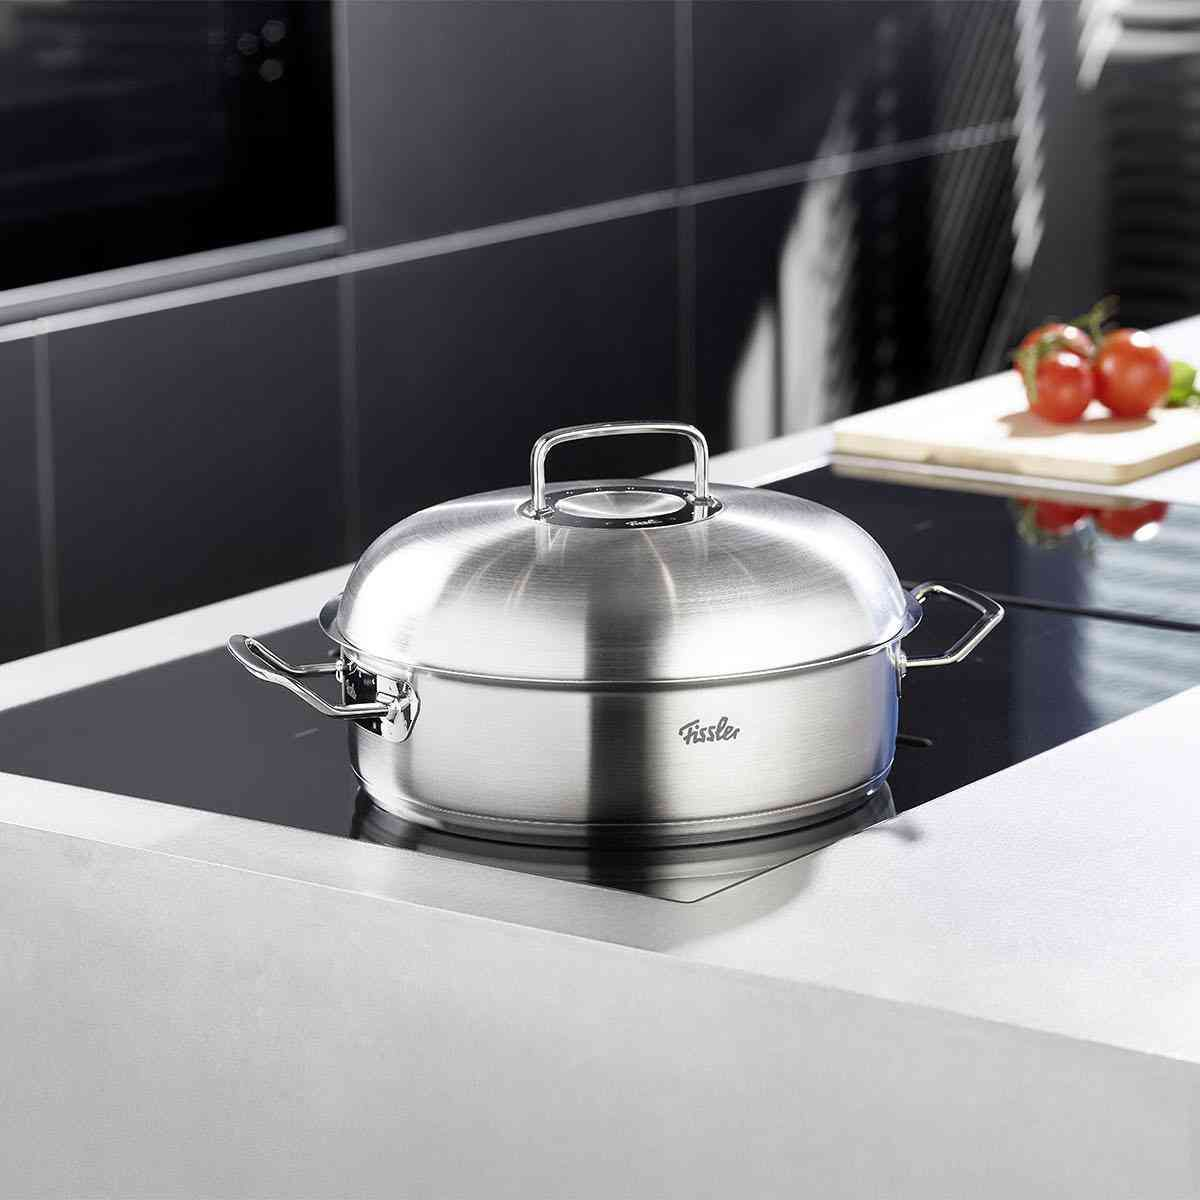 pure-profi collection Dutch Oven/Roaster with High Domed Lid, 5.1 Quart